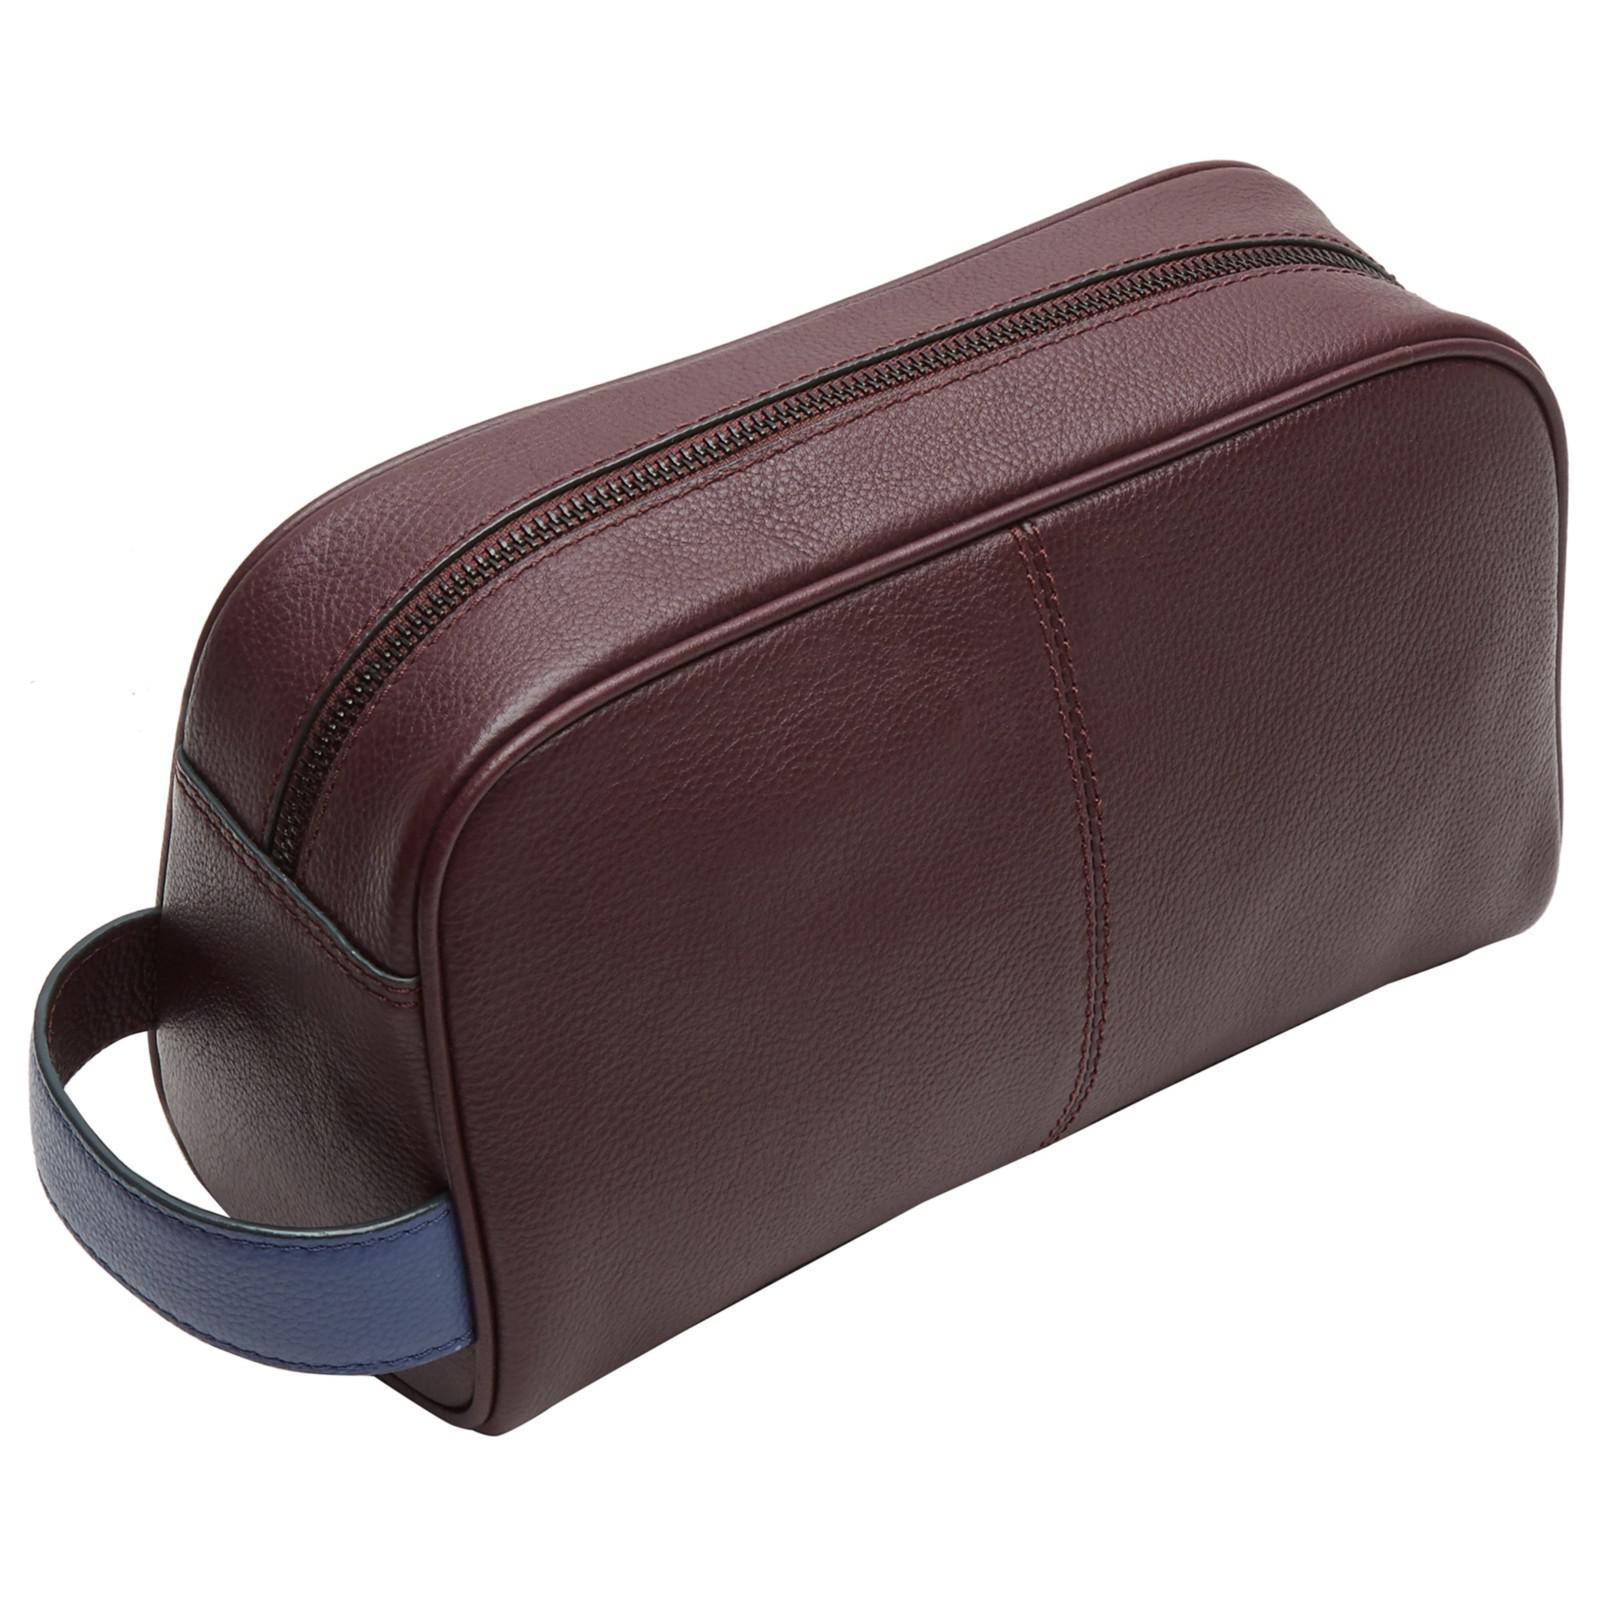 a8f808323 Ted Baker Moofasa Leather Wash Bag for Men - Lyst